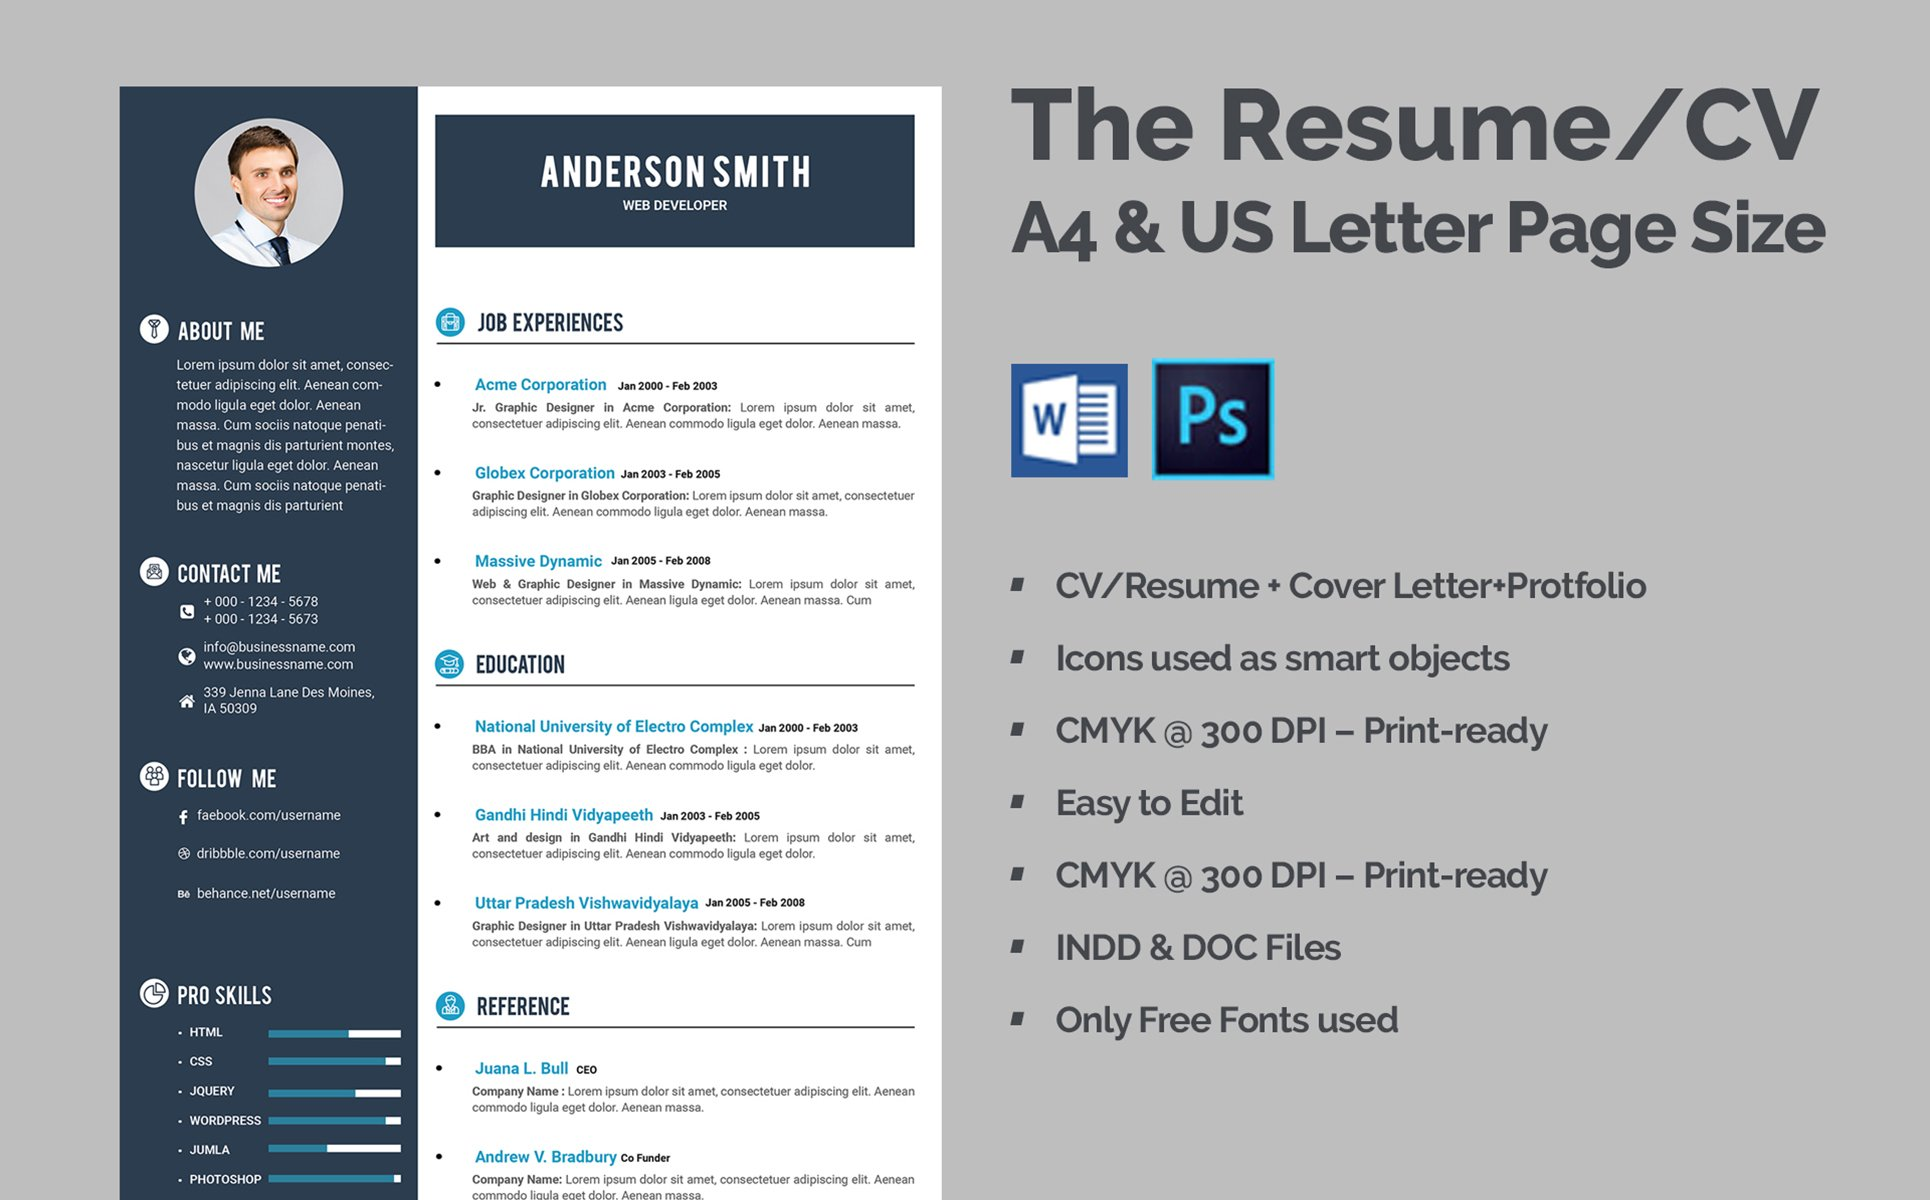 Web Developer CV Resume Template Big Screenshot